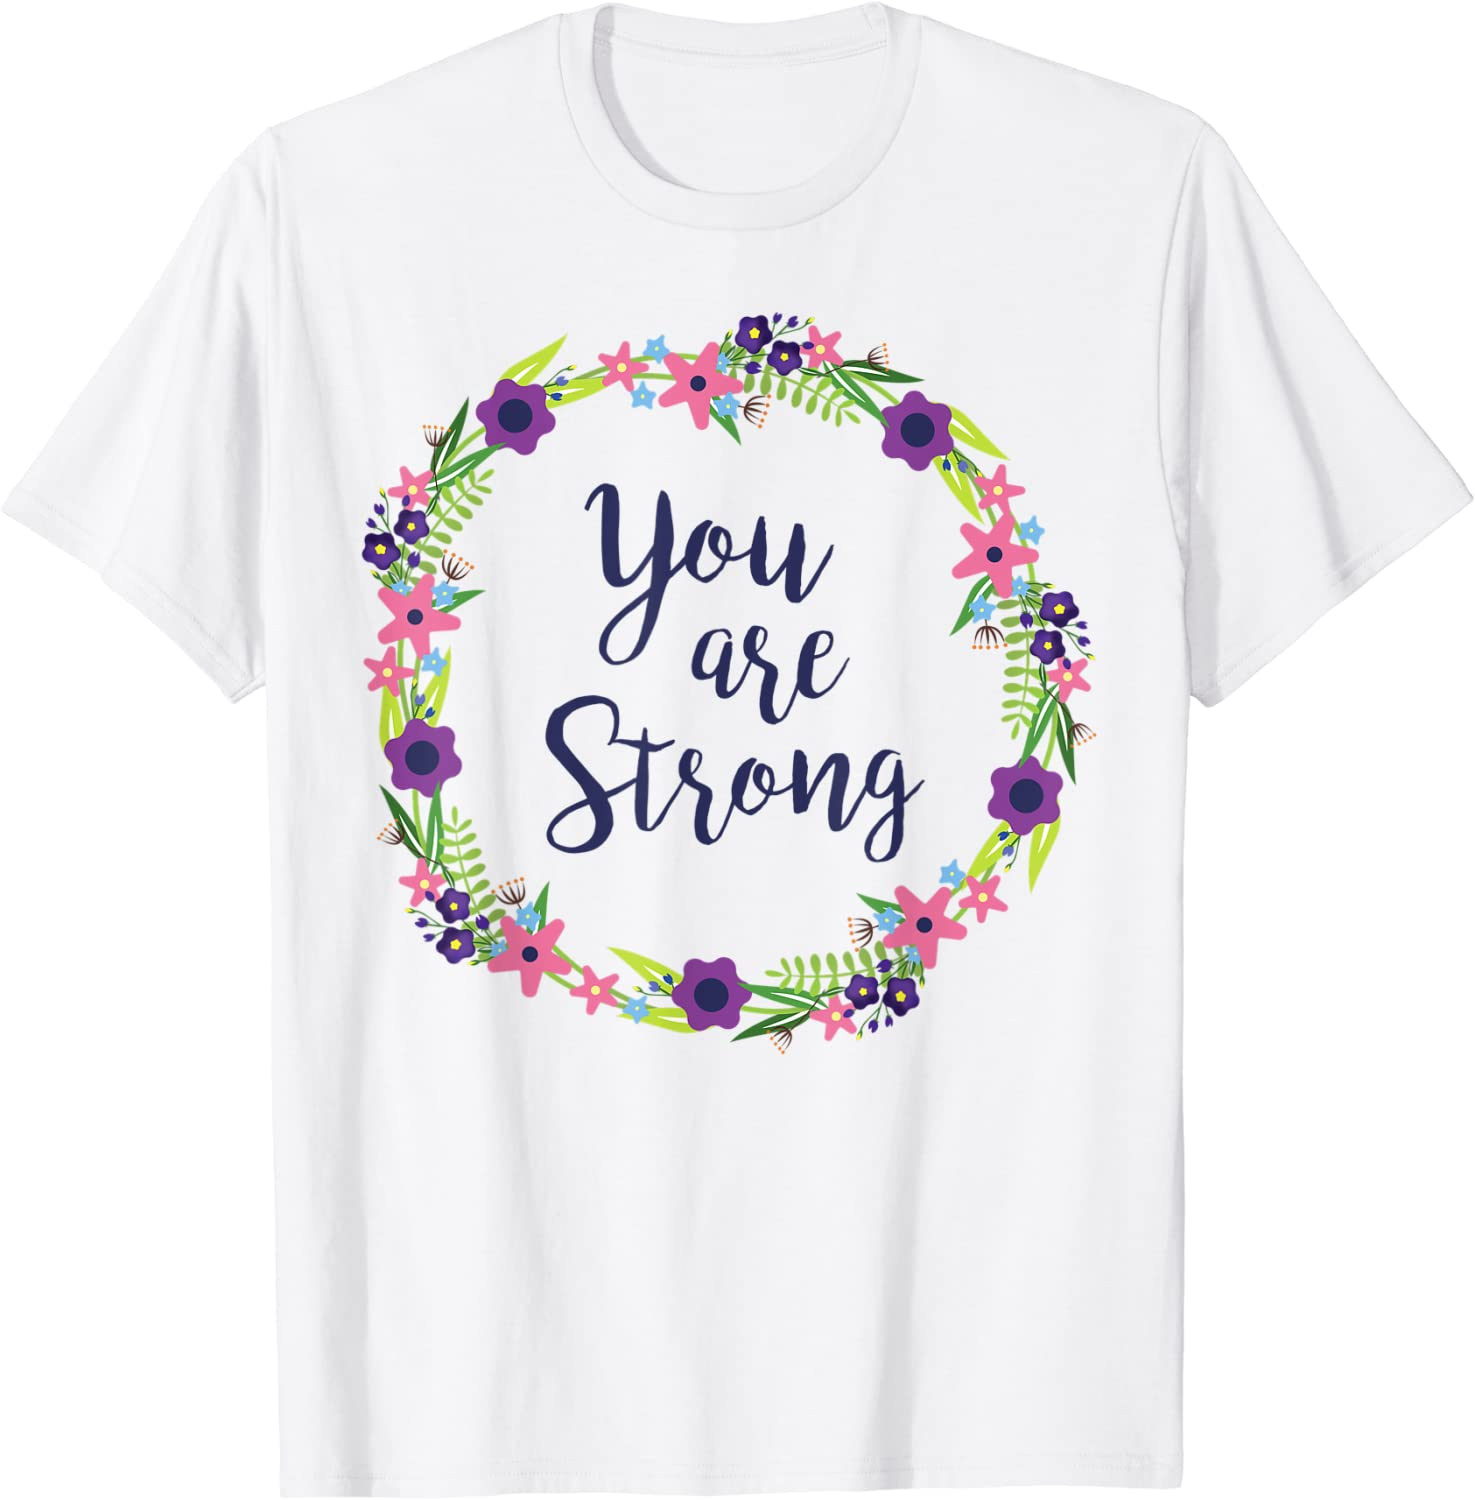 Assorted Colors The Bravest Thing You Can Be is Yourself Womens Shirt Womans Motivational message Shirt Available in Misses Unisex and Plus size T-Shirt